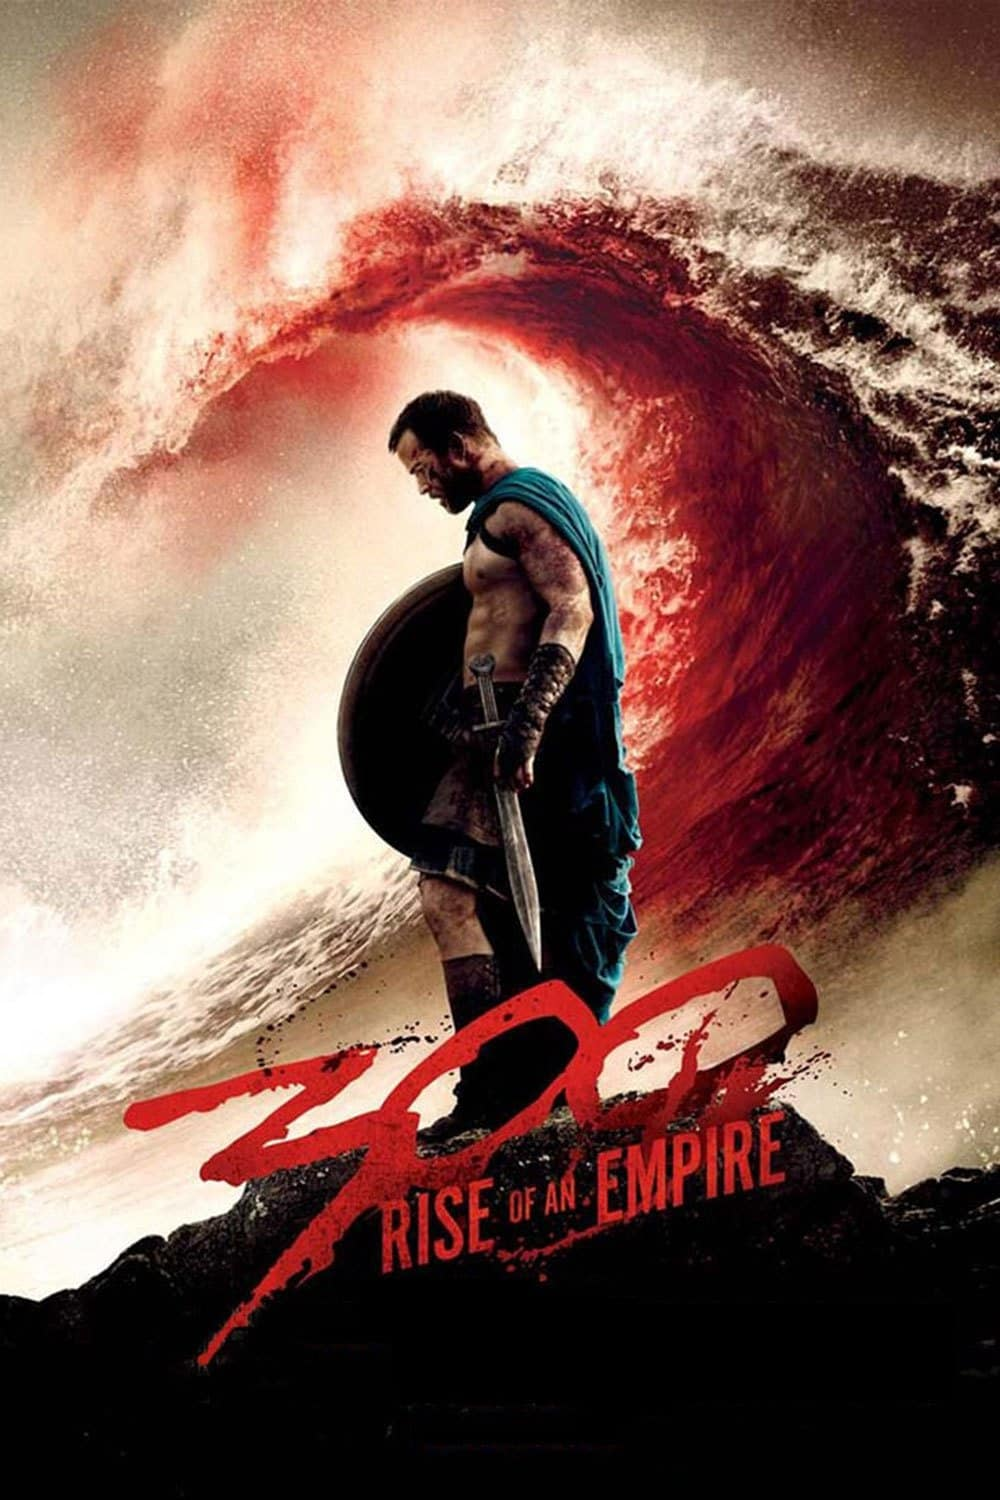 300: Rise of an Empire, 2014